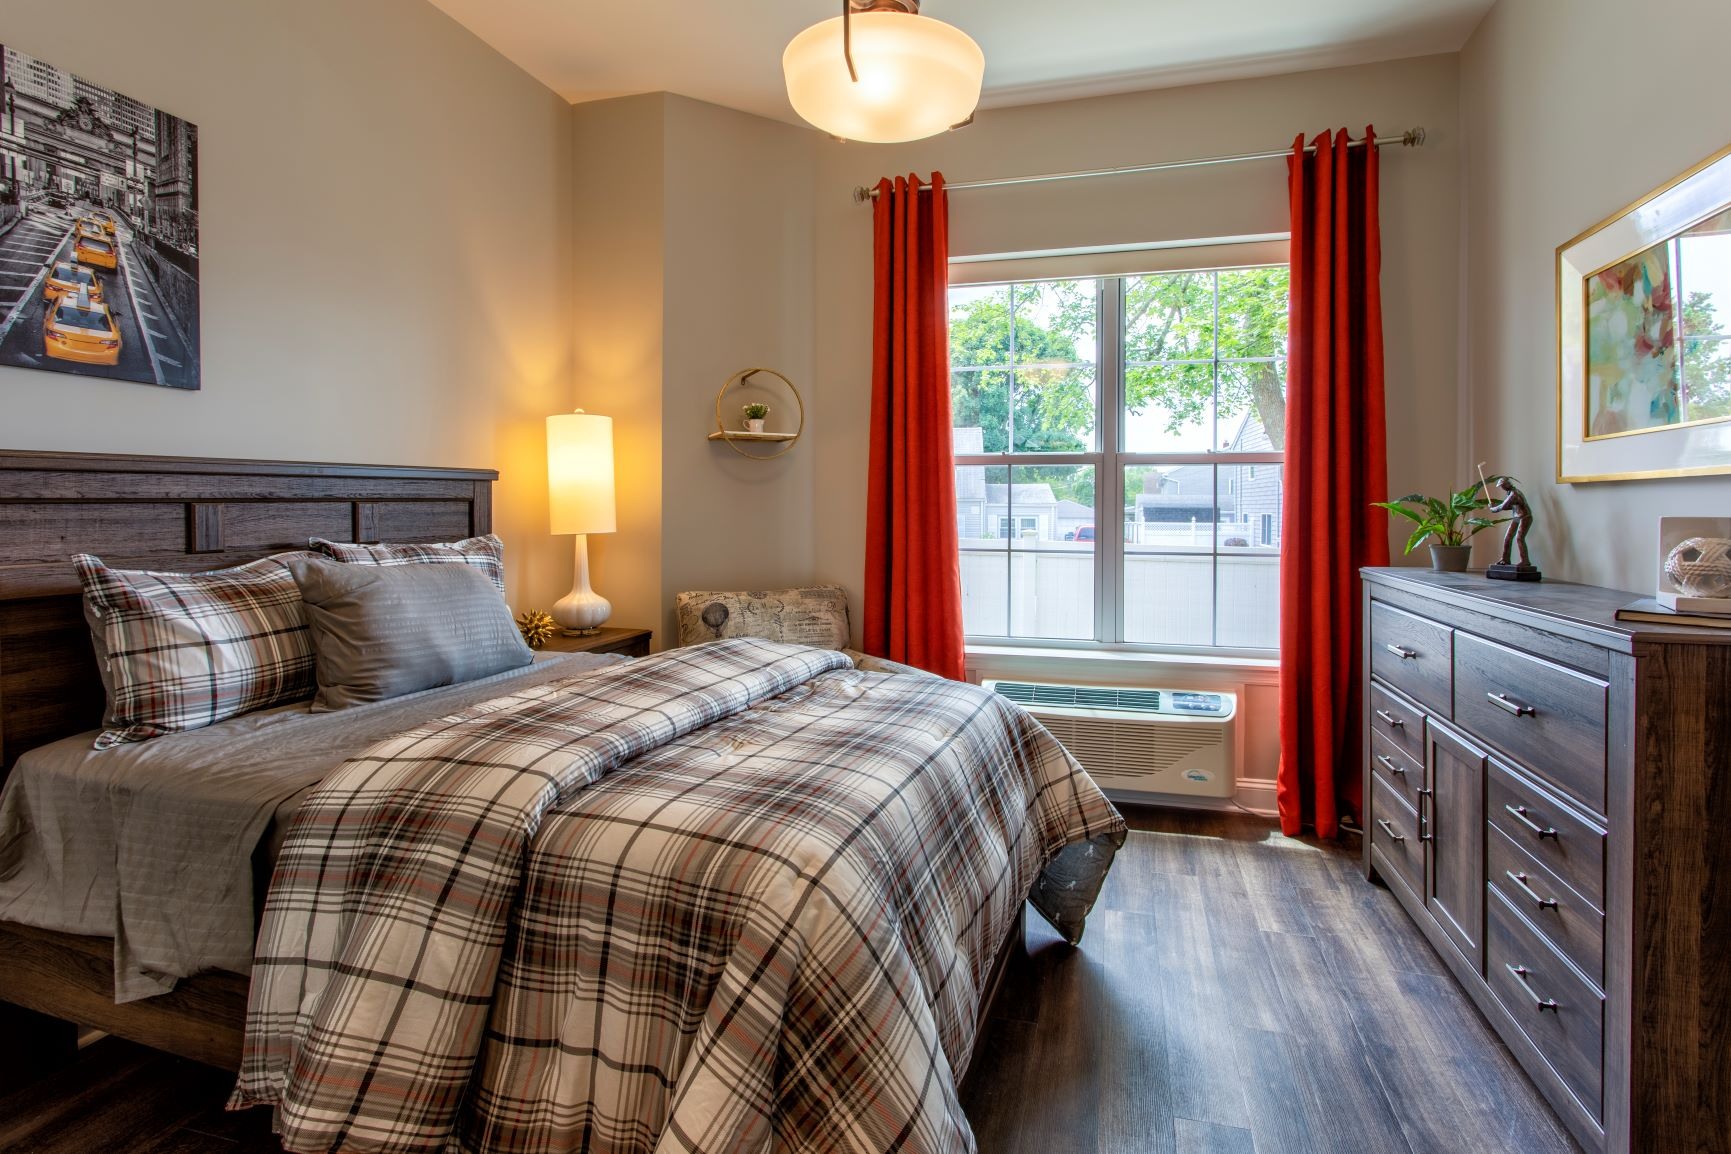 Queen bed in model apartment with window and dresser